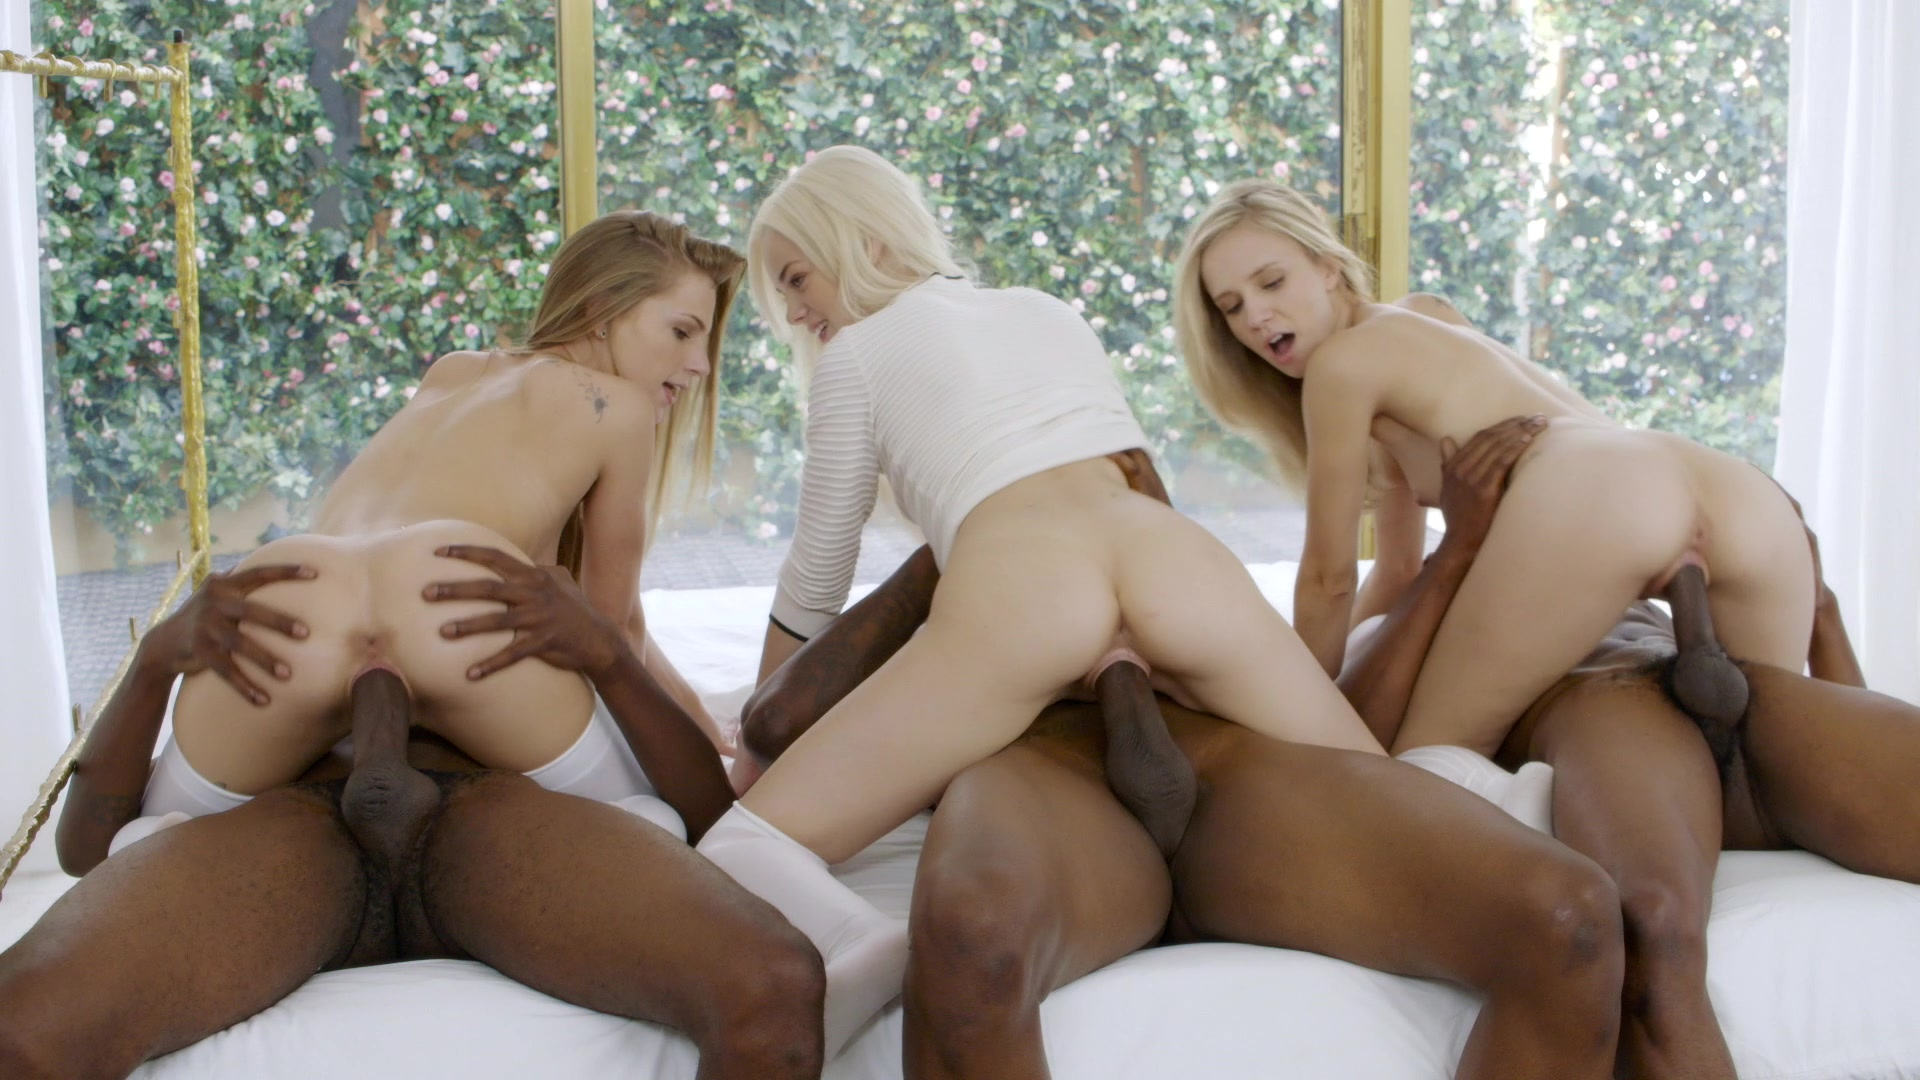 Interracial Group Porn 119